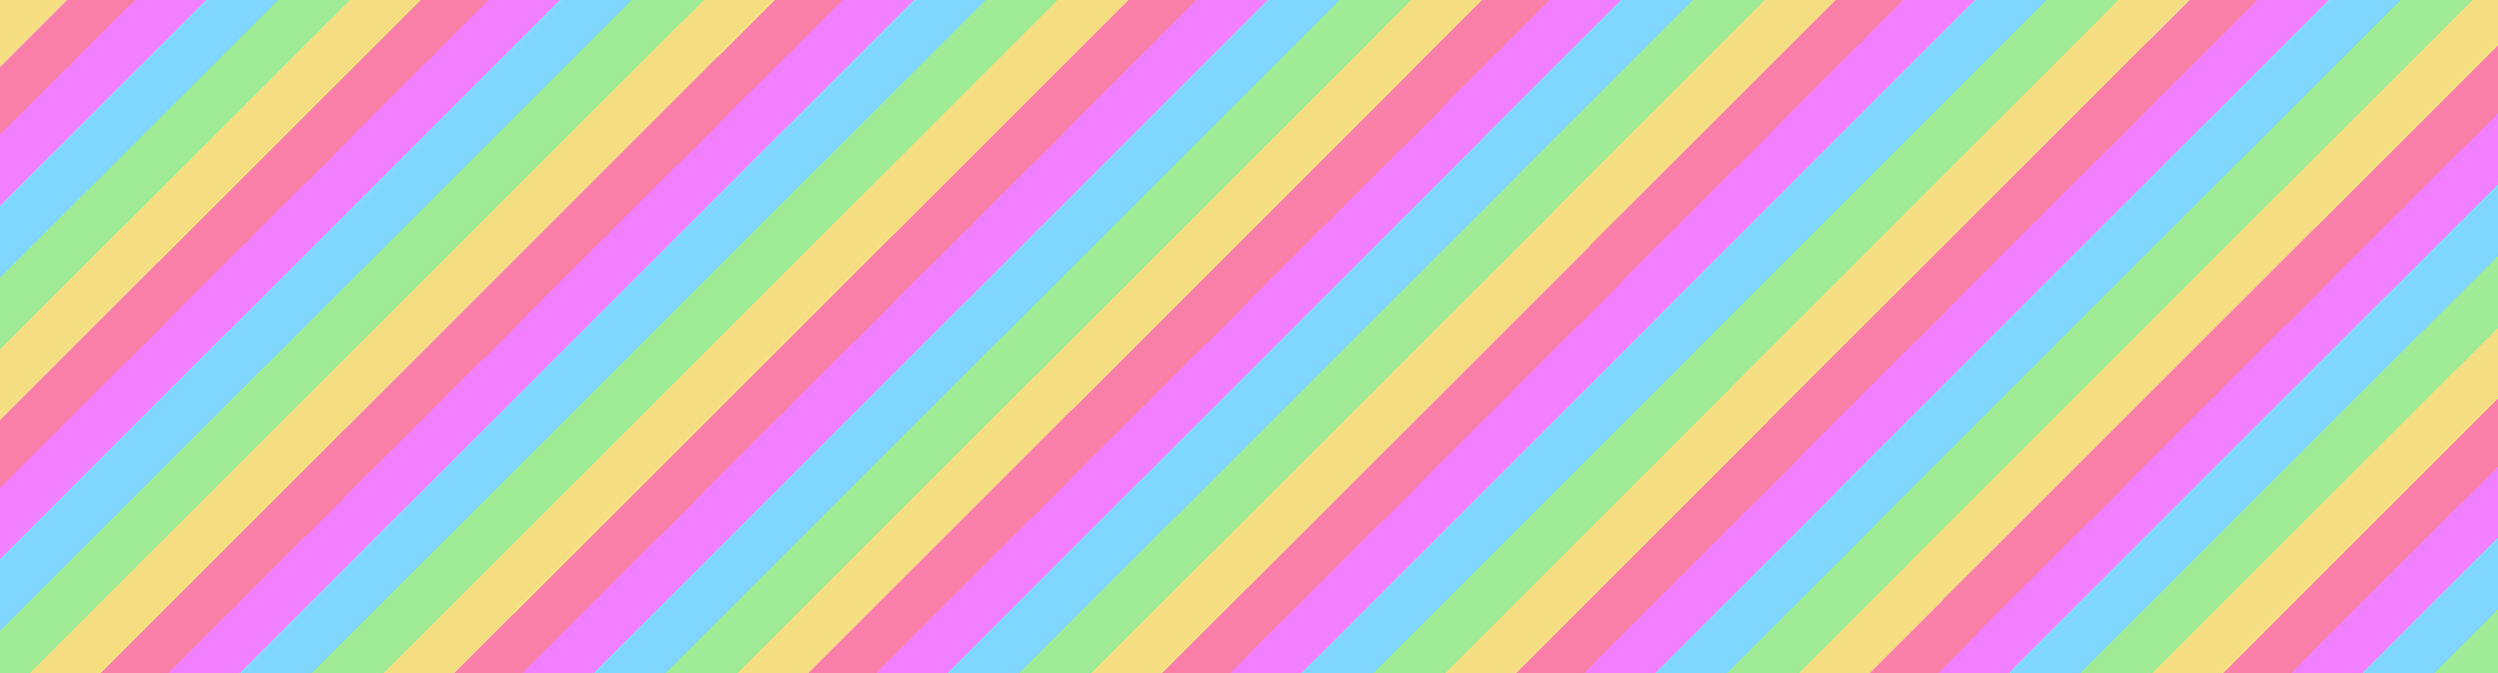 A rainbow striped banner